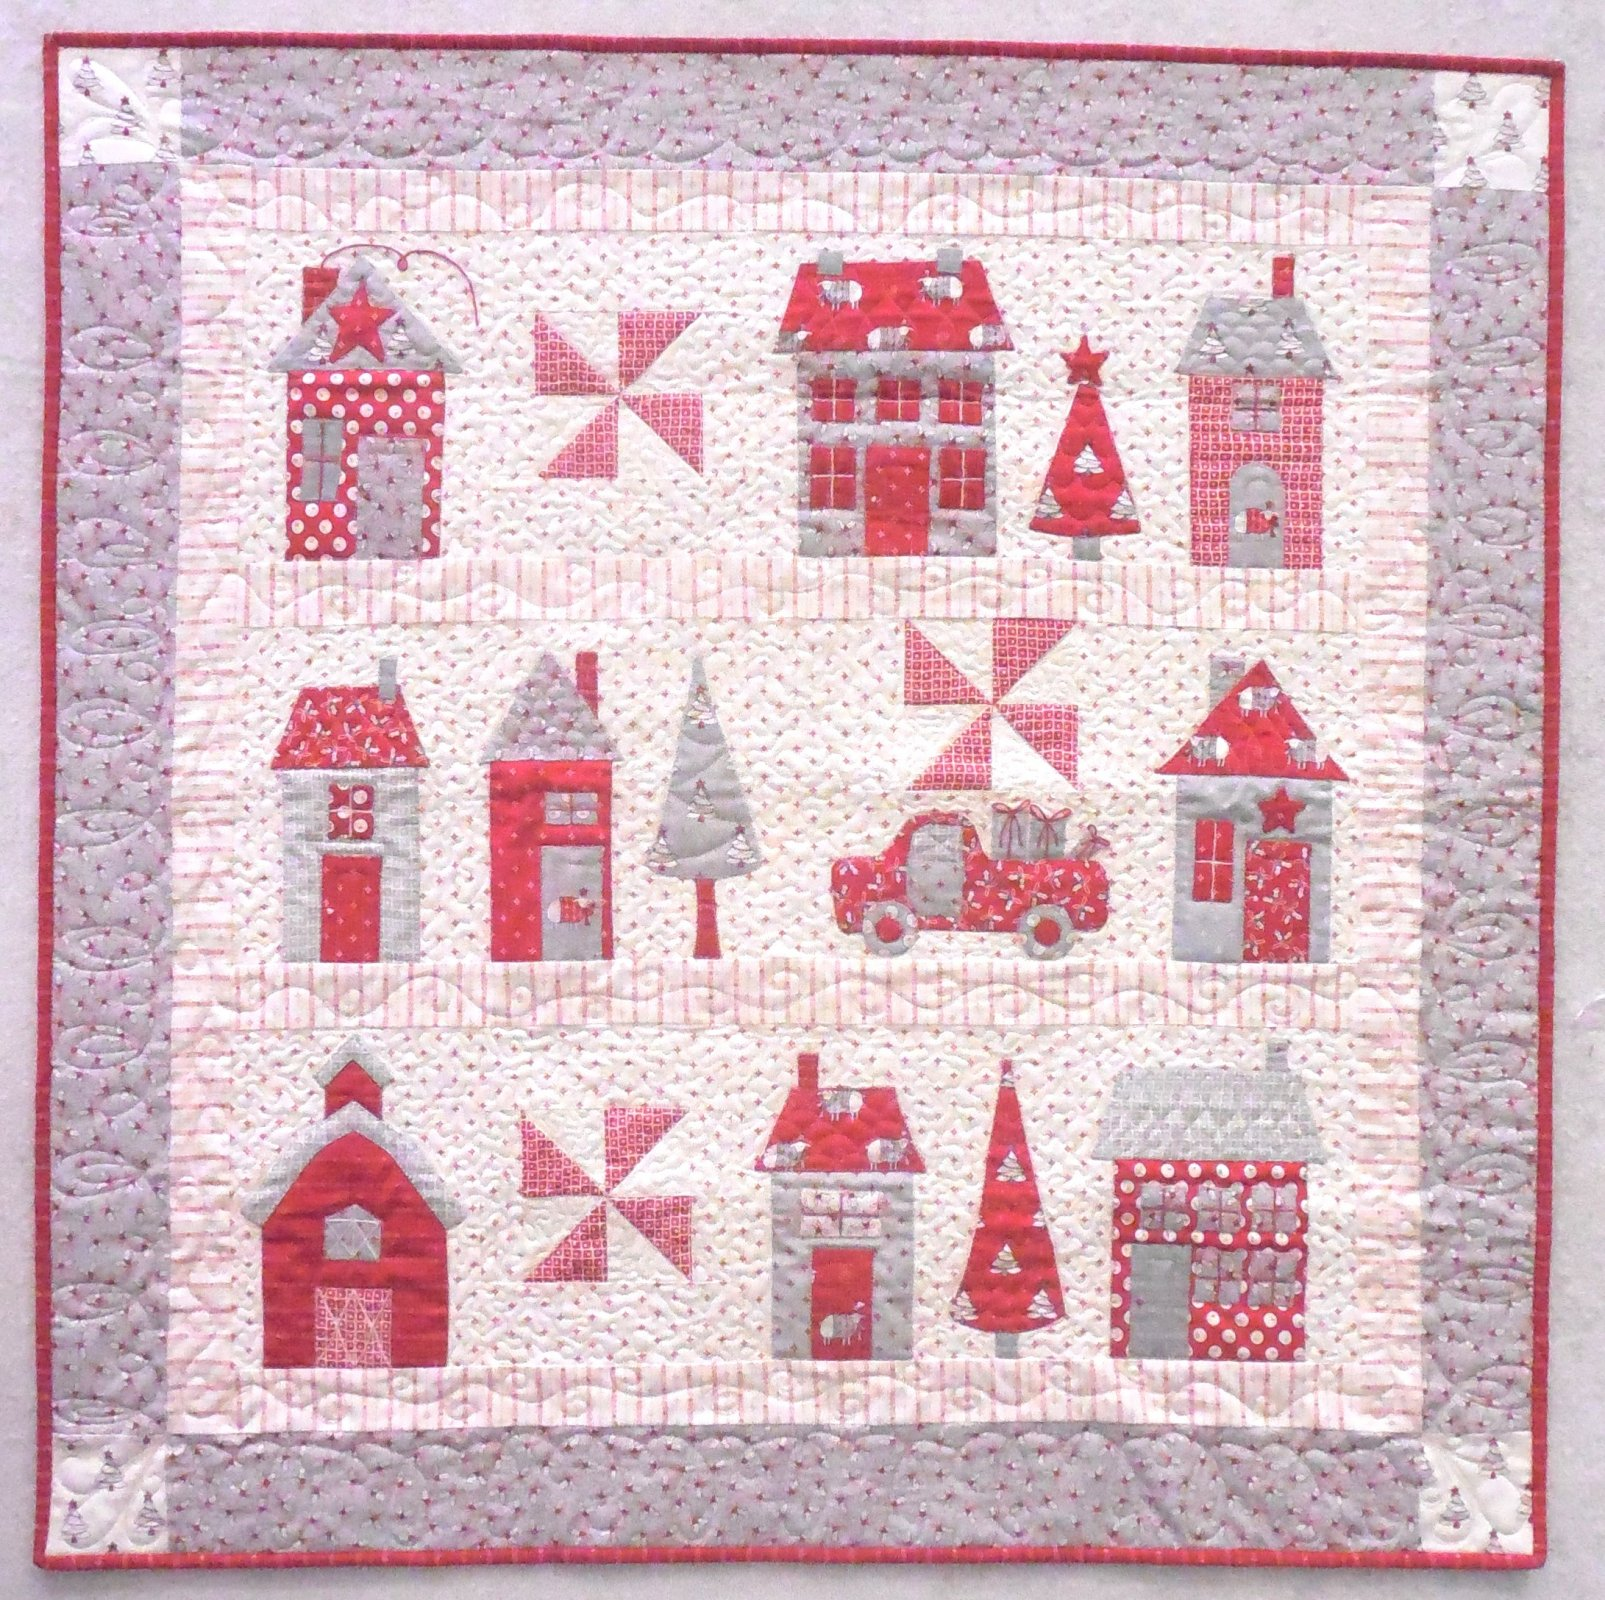 Sweater Weather Quilt Kit 36 1/2 X 36 1/2